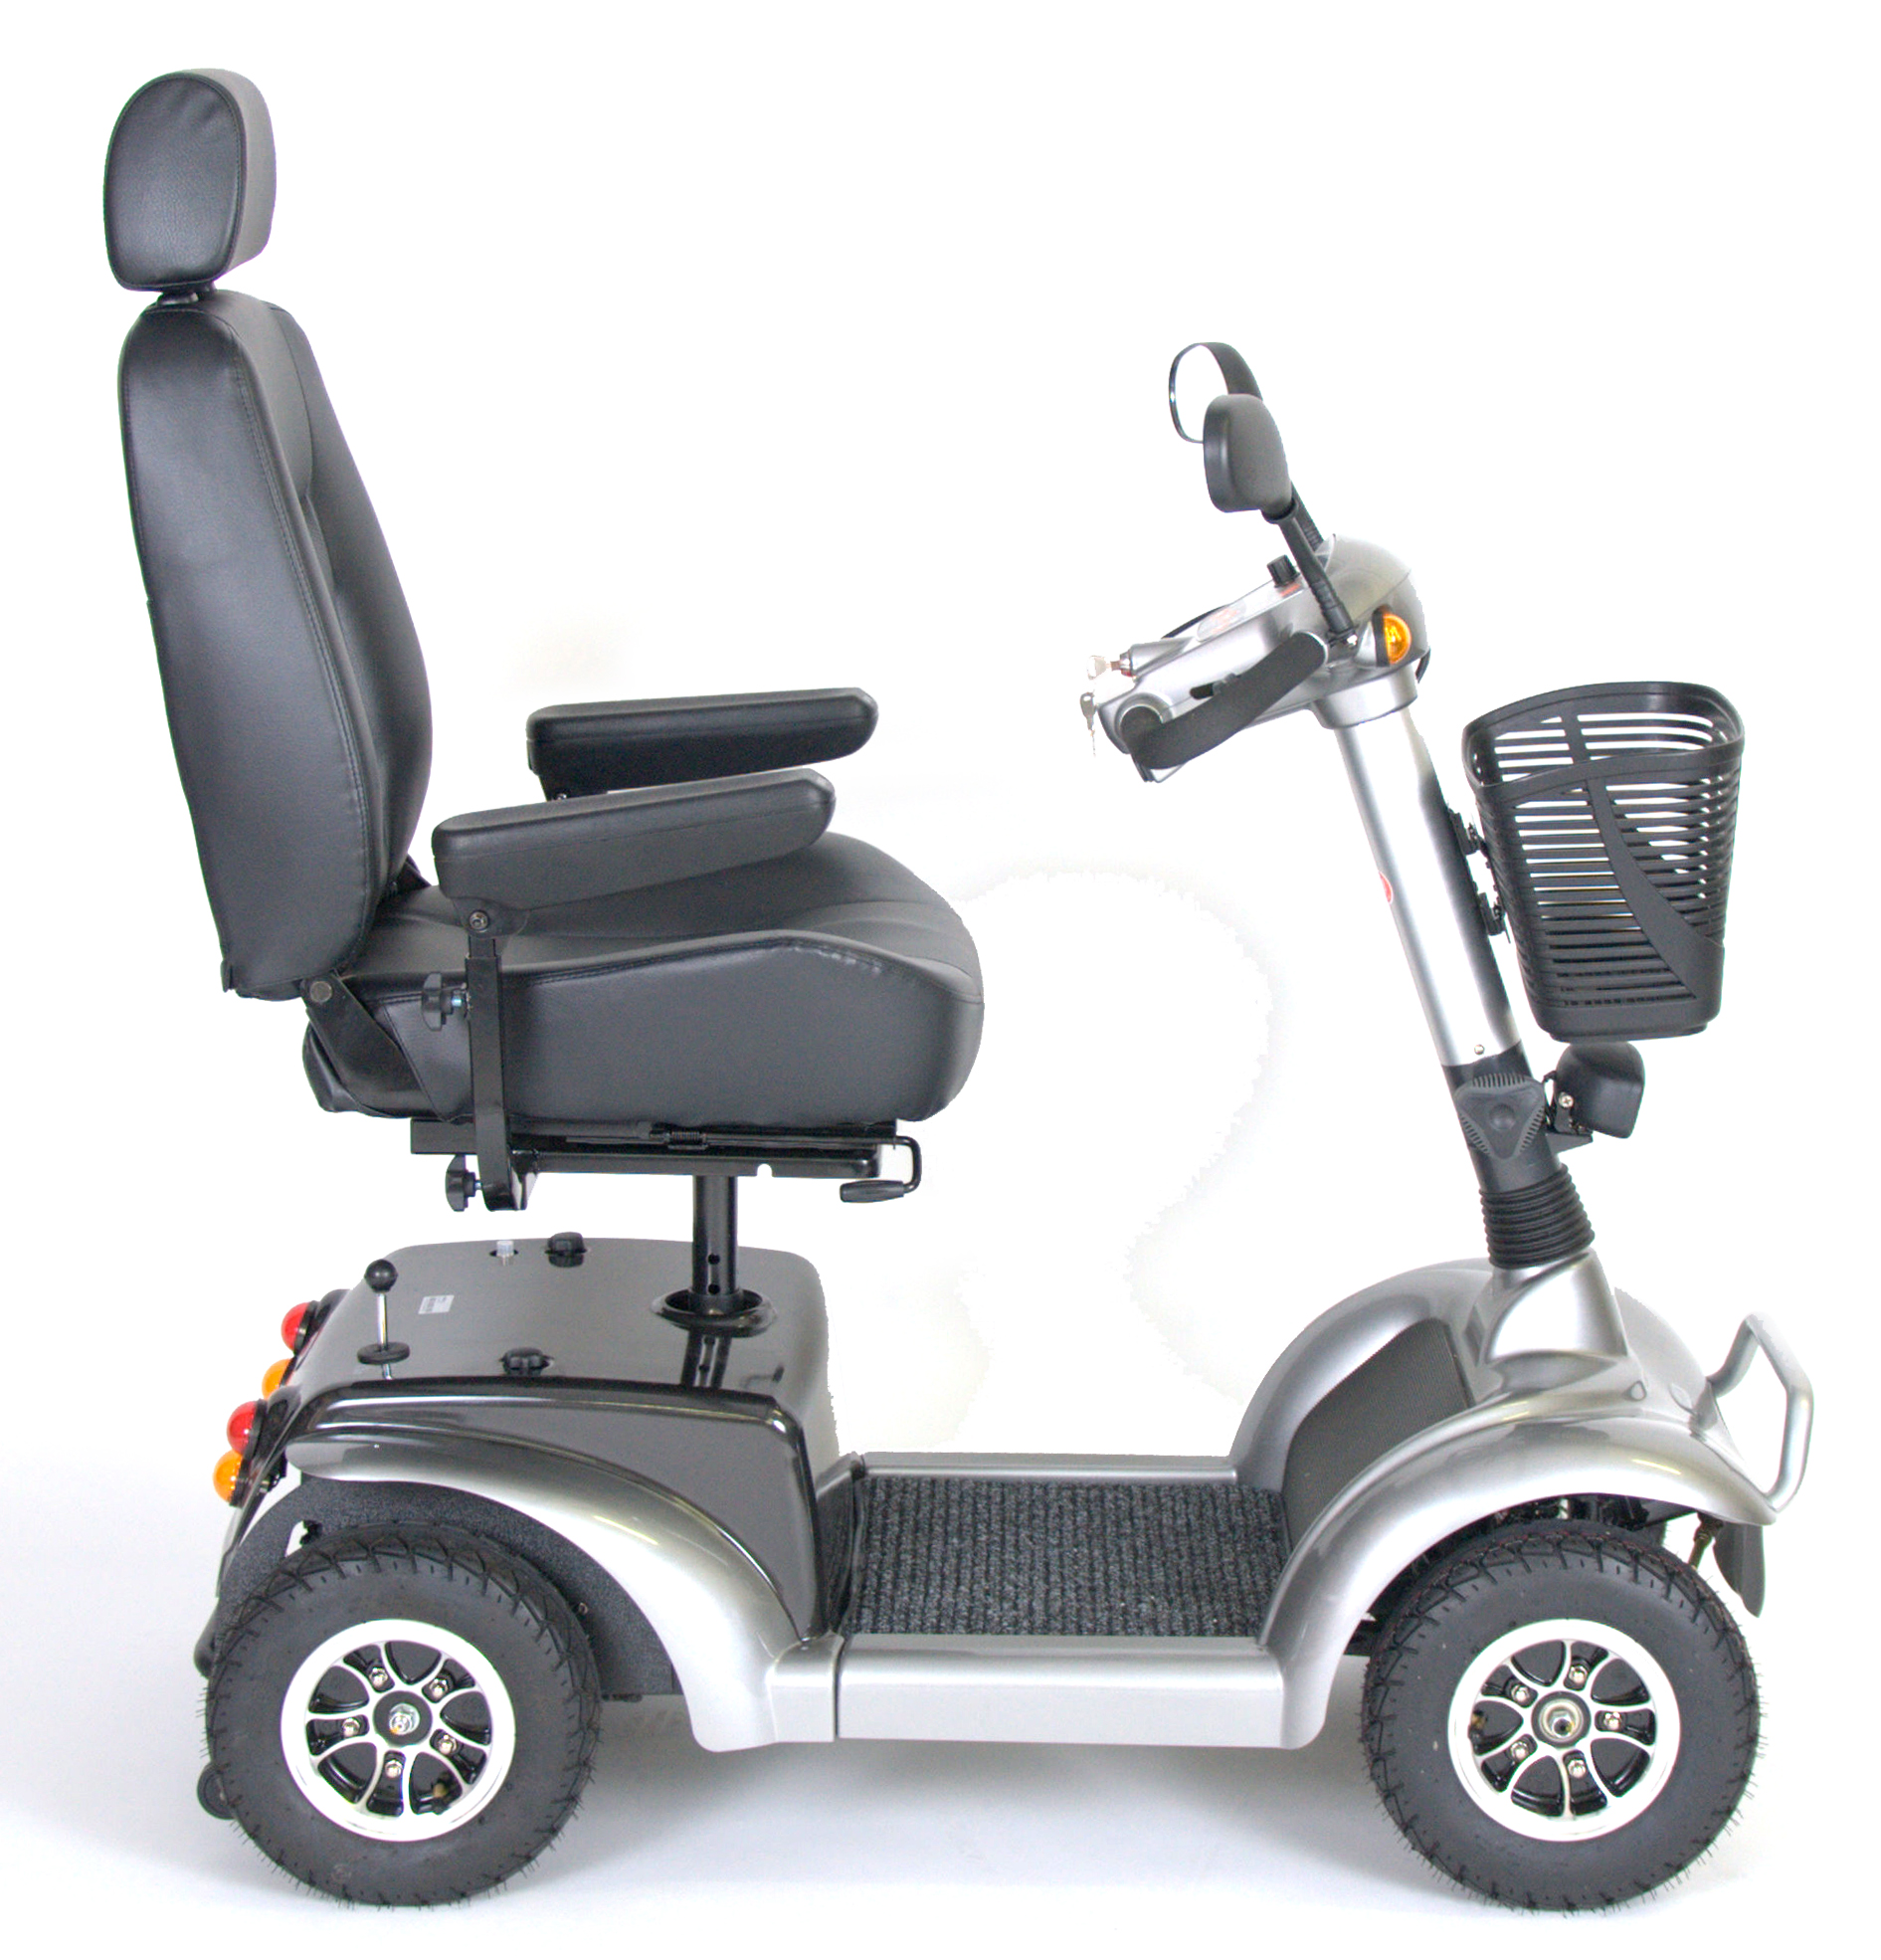 Prowler Mobility Scooter 4 Wheel Power Scooters